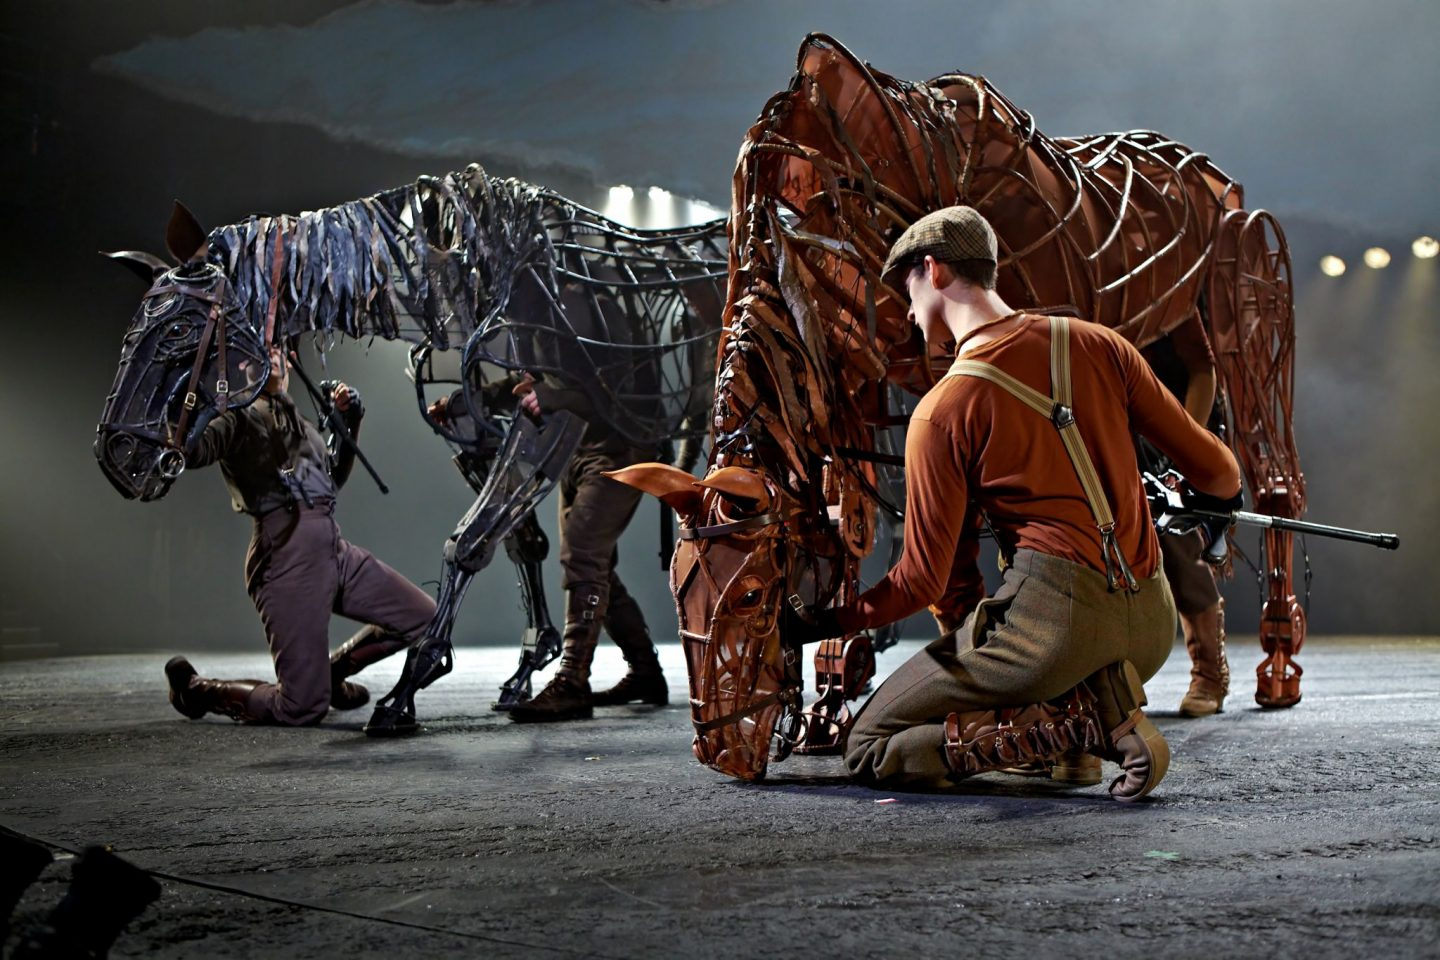 War Horse at the New London Theatre Photo by Brinkhoff Mögenburg 852-112